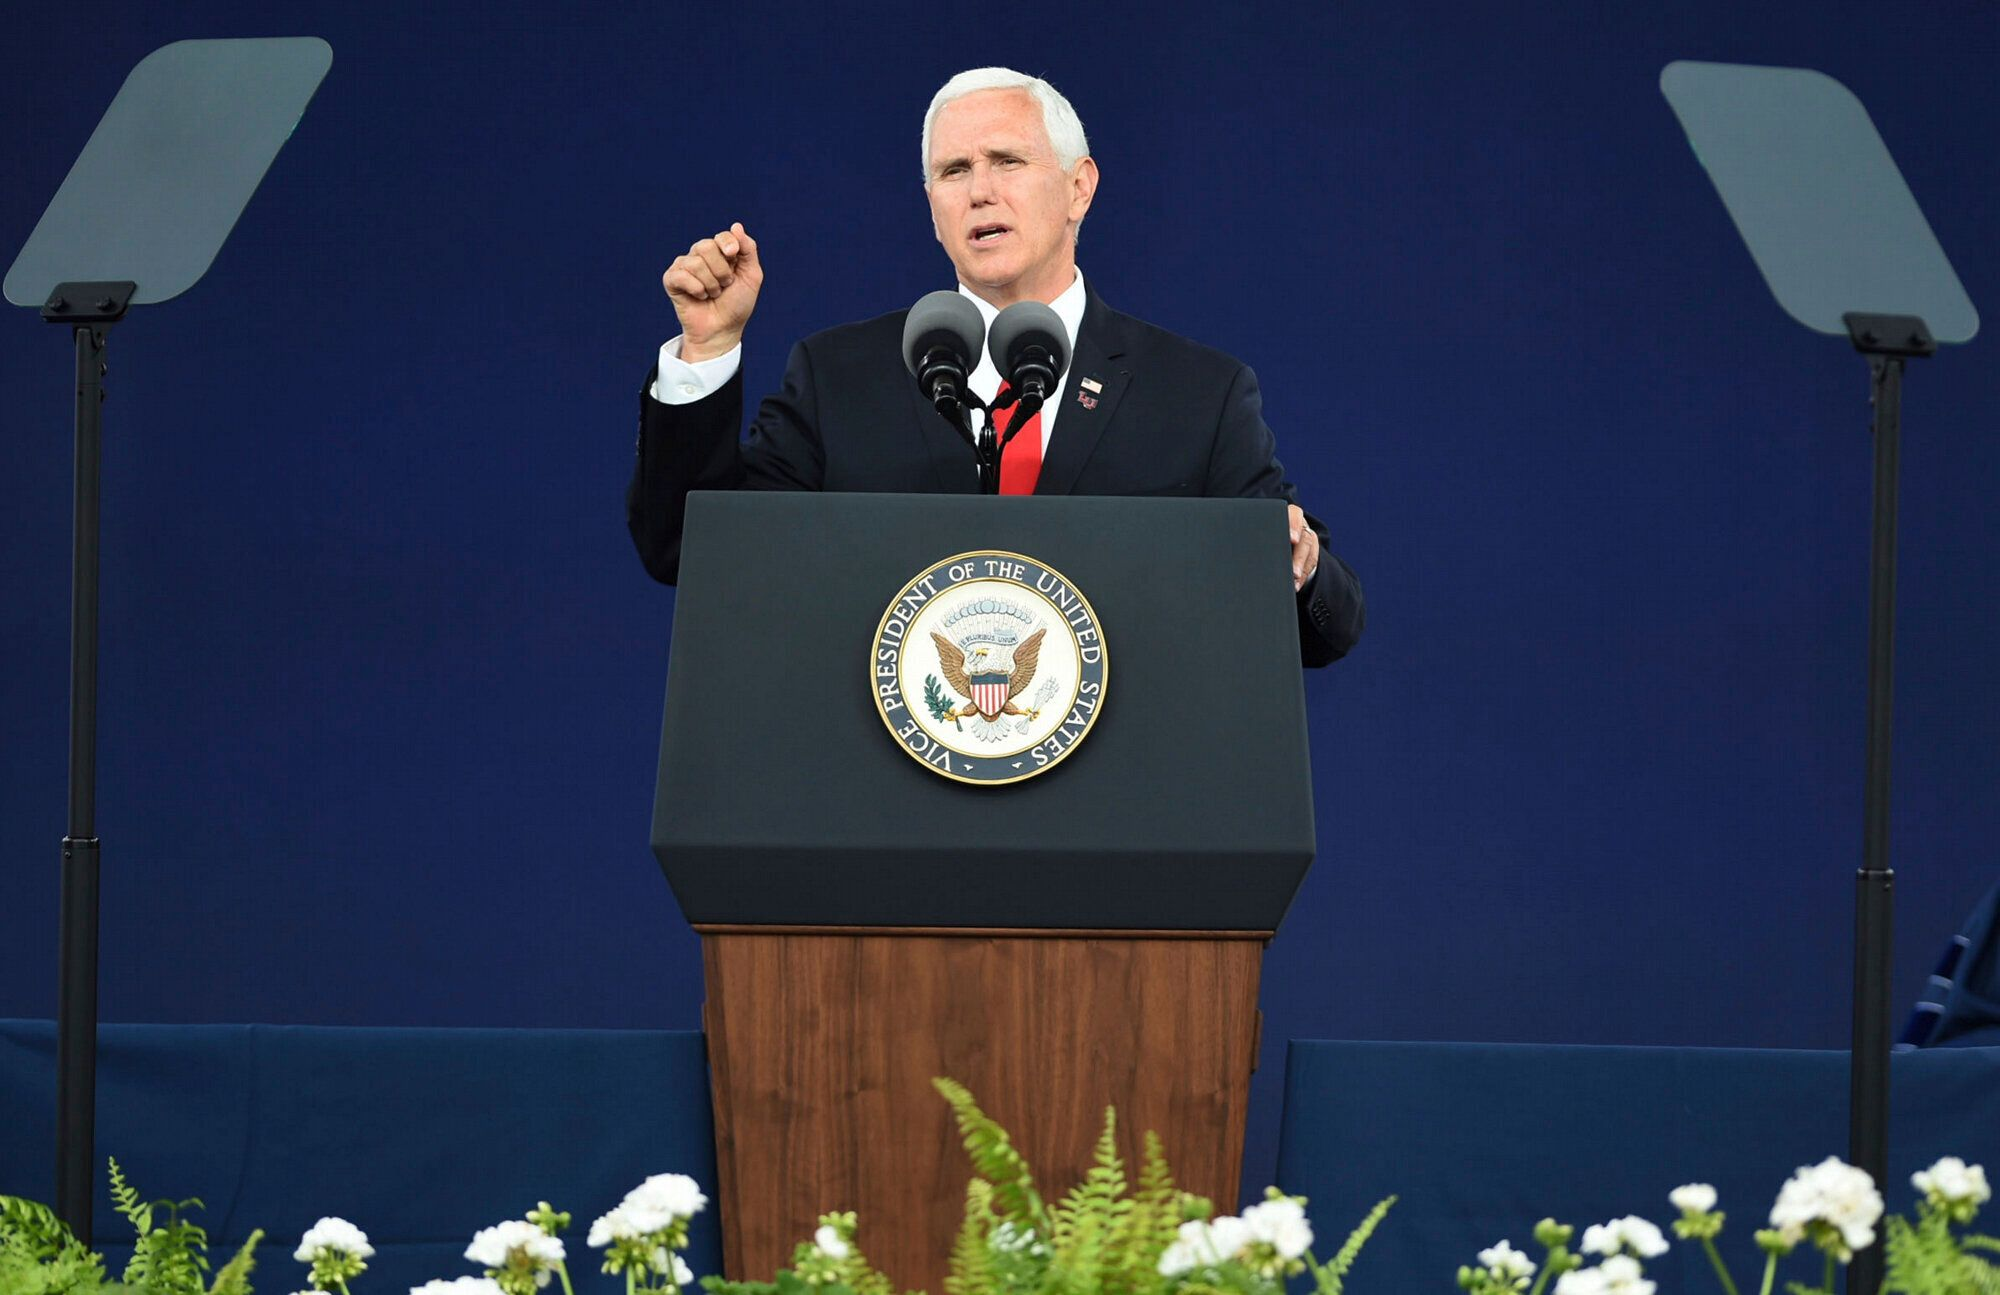 Dozens Protest Mike Pence At Taylor University Graduation In Home State Of Indiana